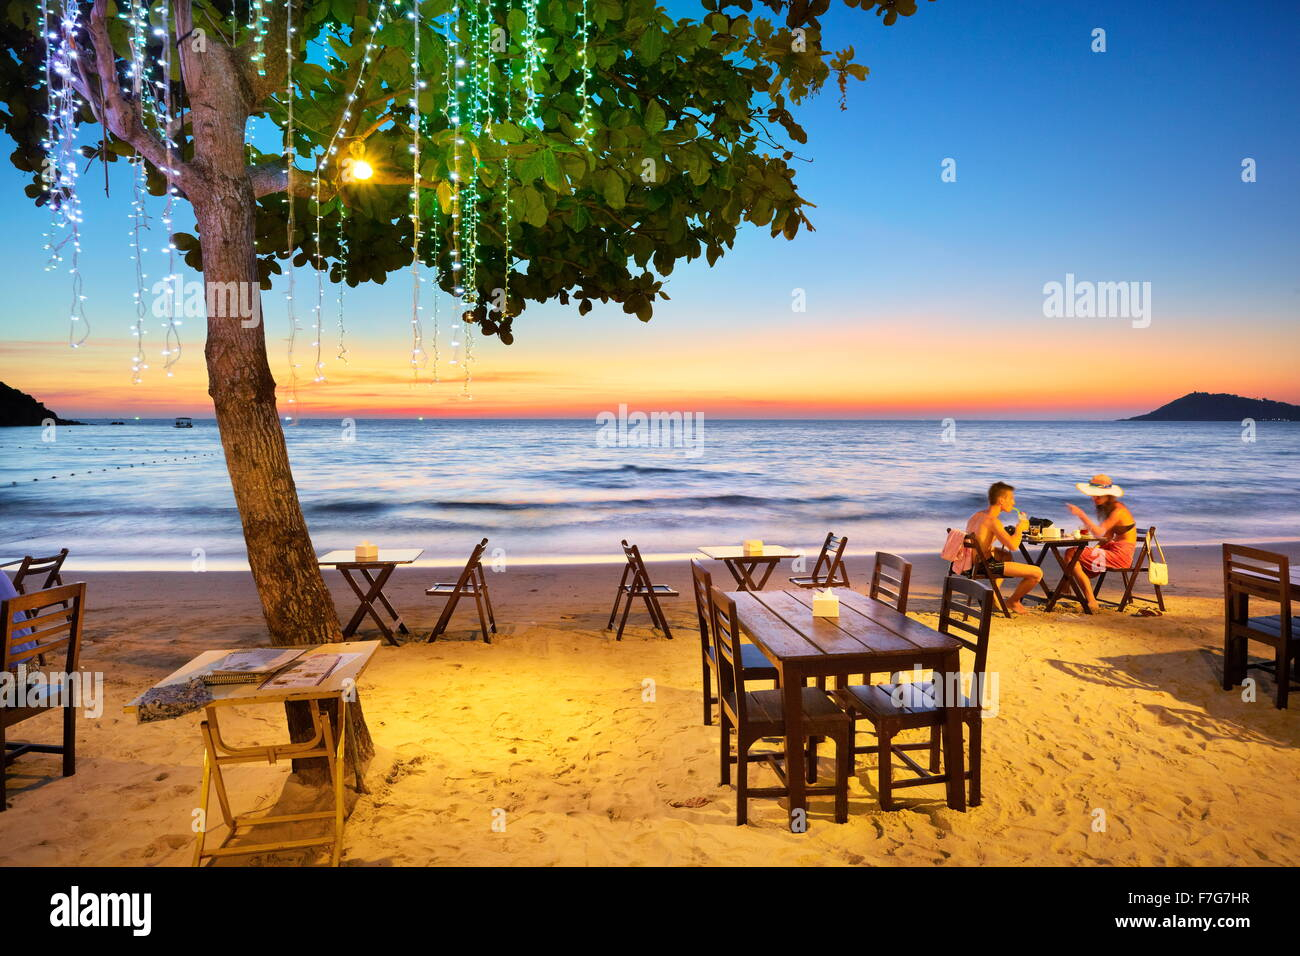 Tropical Restaurant on the beach in Lima Coco Resort, Koh Samet Island, Thailand - Stock Image